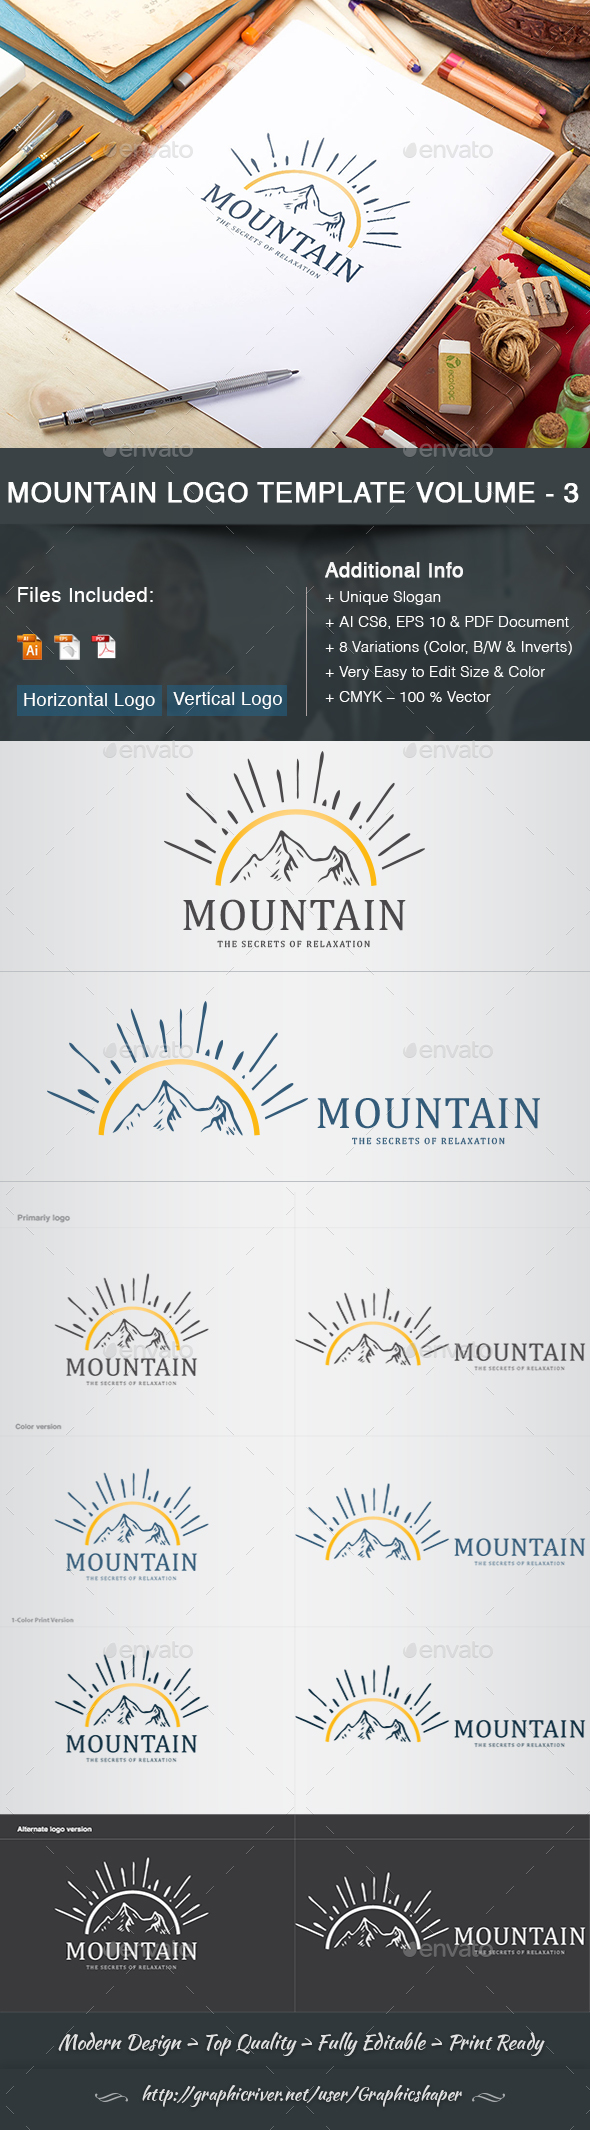 GraphicRiver Mountain Logo Template Volume 3 21189869